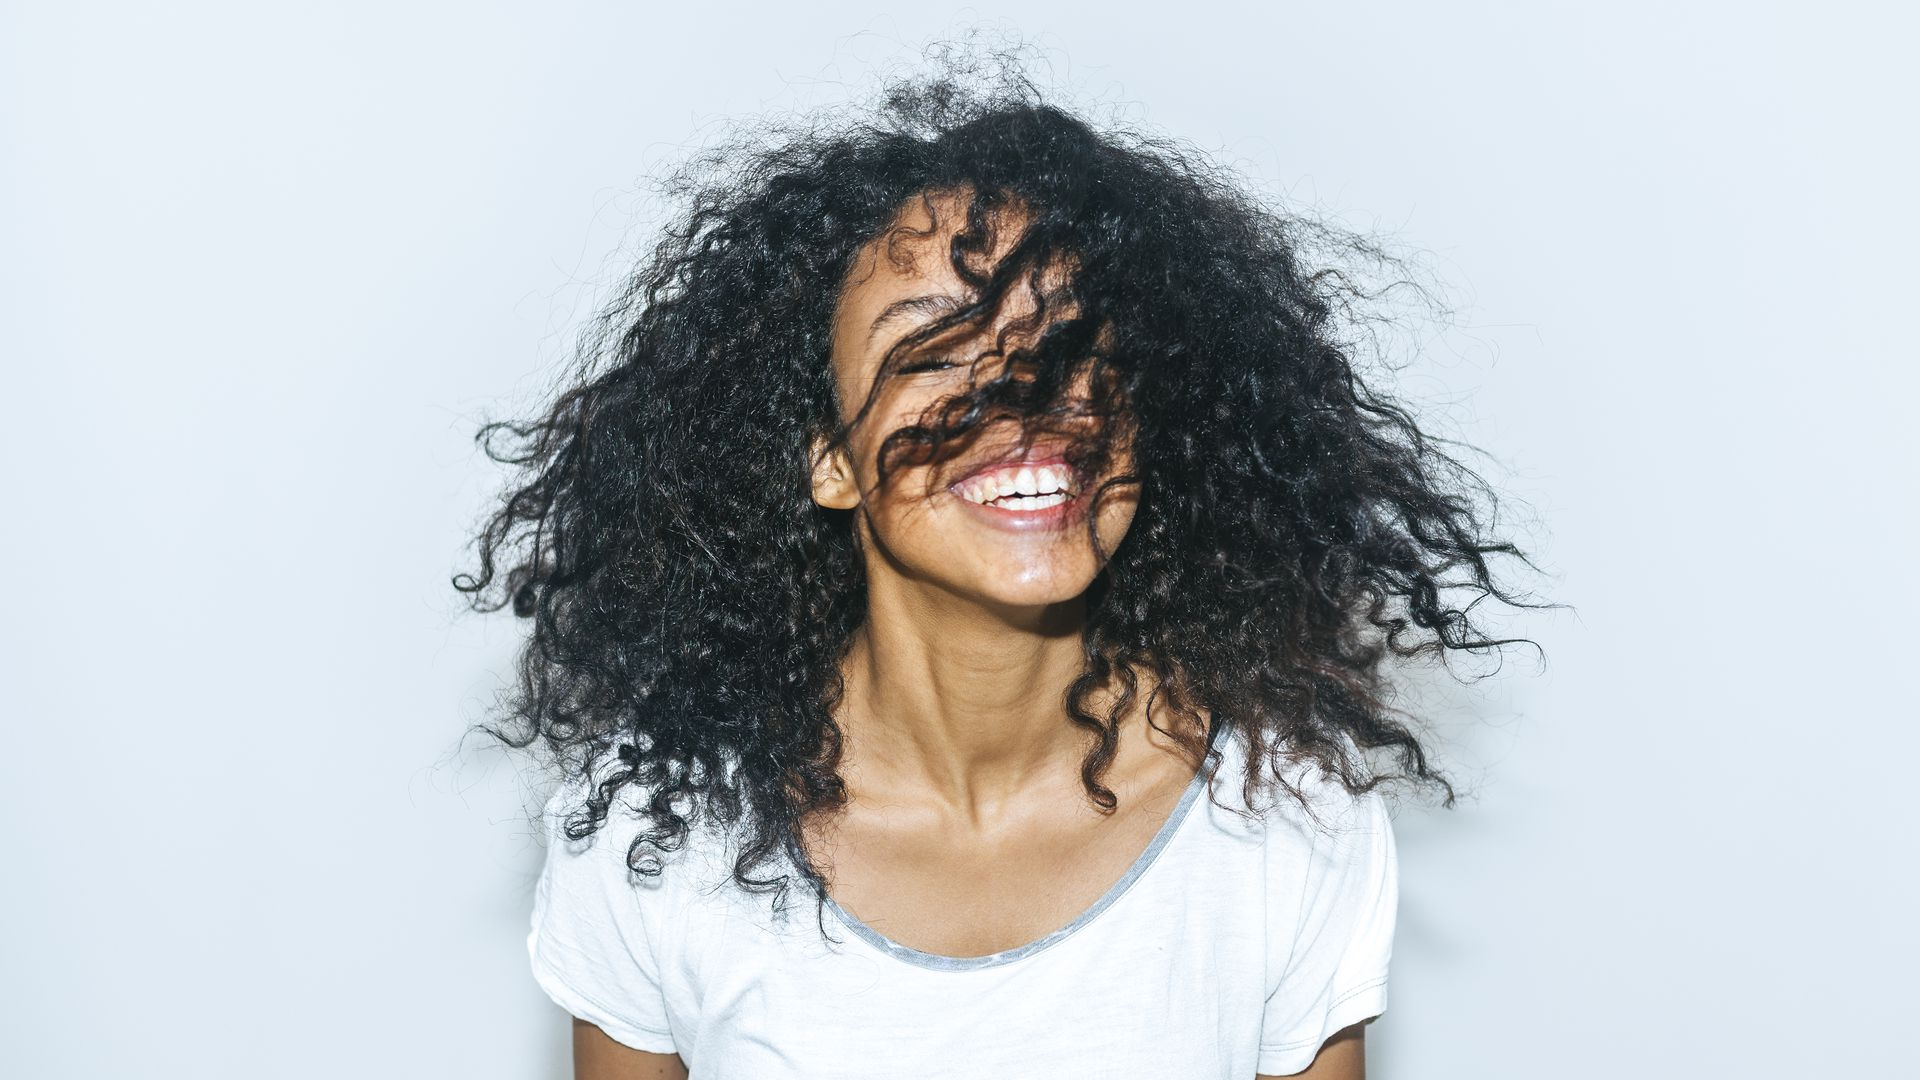 A woman smiling with her hair